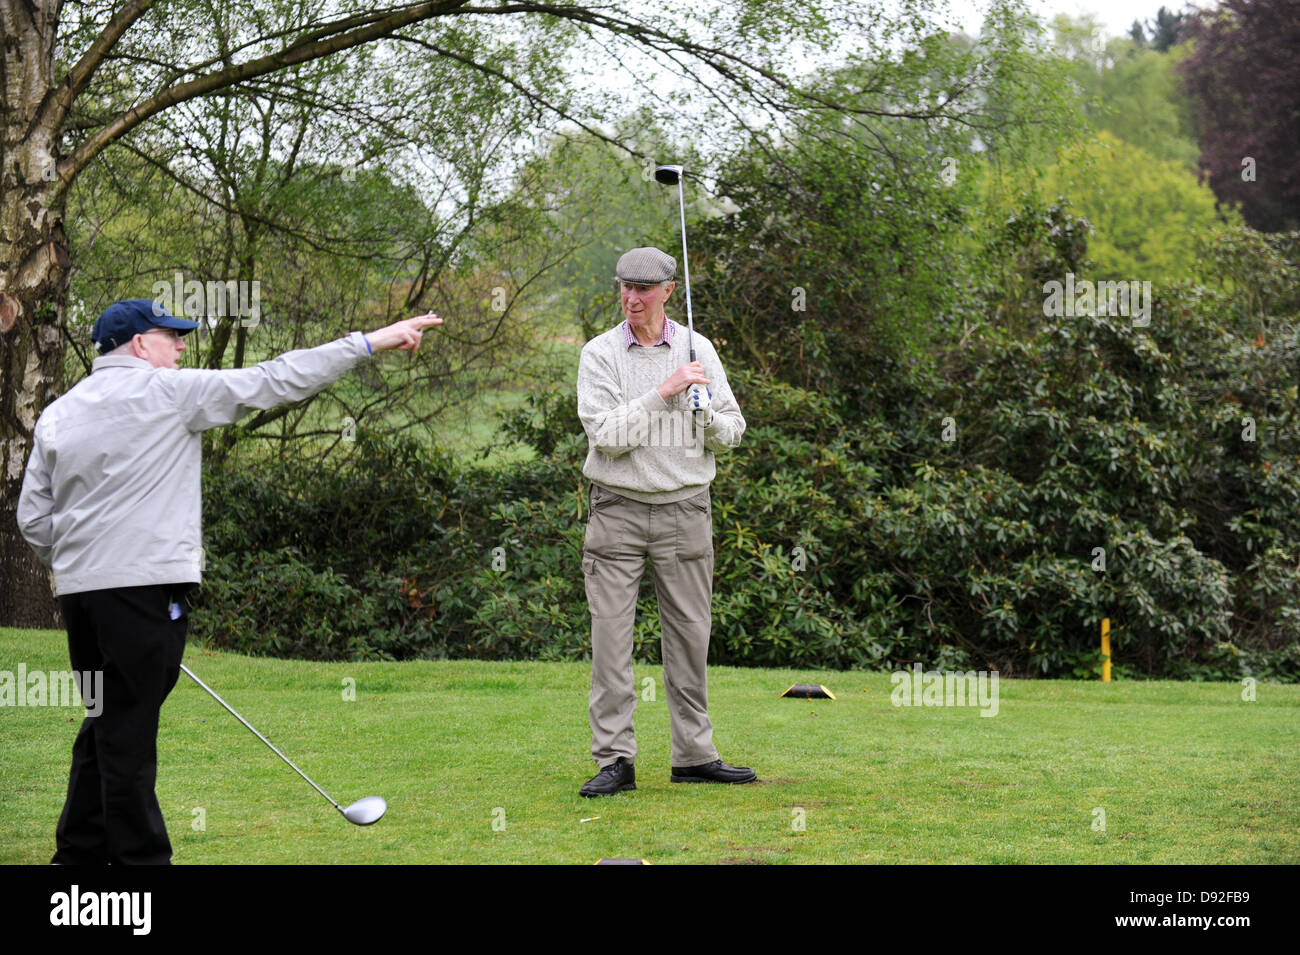 England 1966 world cup winning footballer Jack Charlton gets a golf trip from Nobby Stiles at Brocton Hall Golf - Stock Image